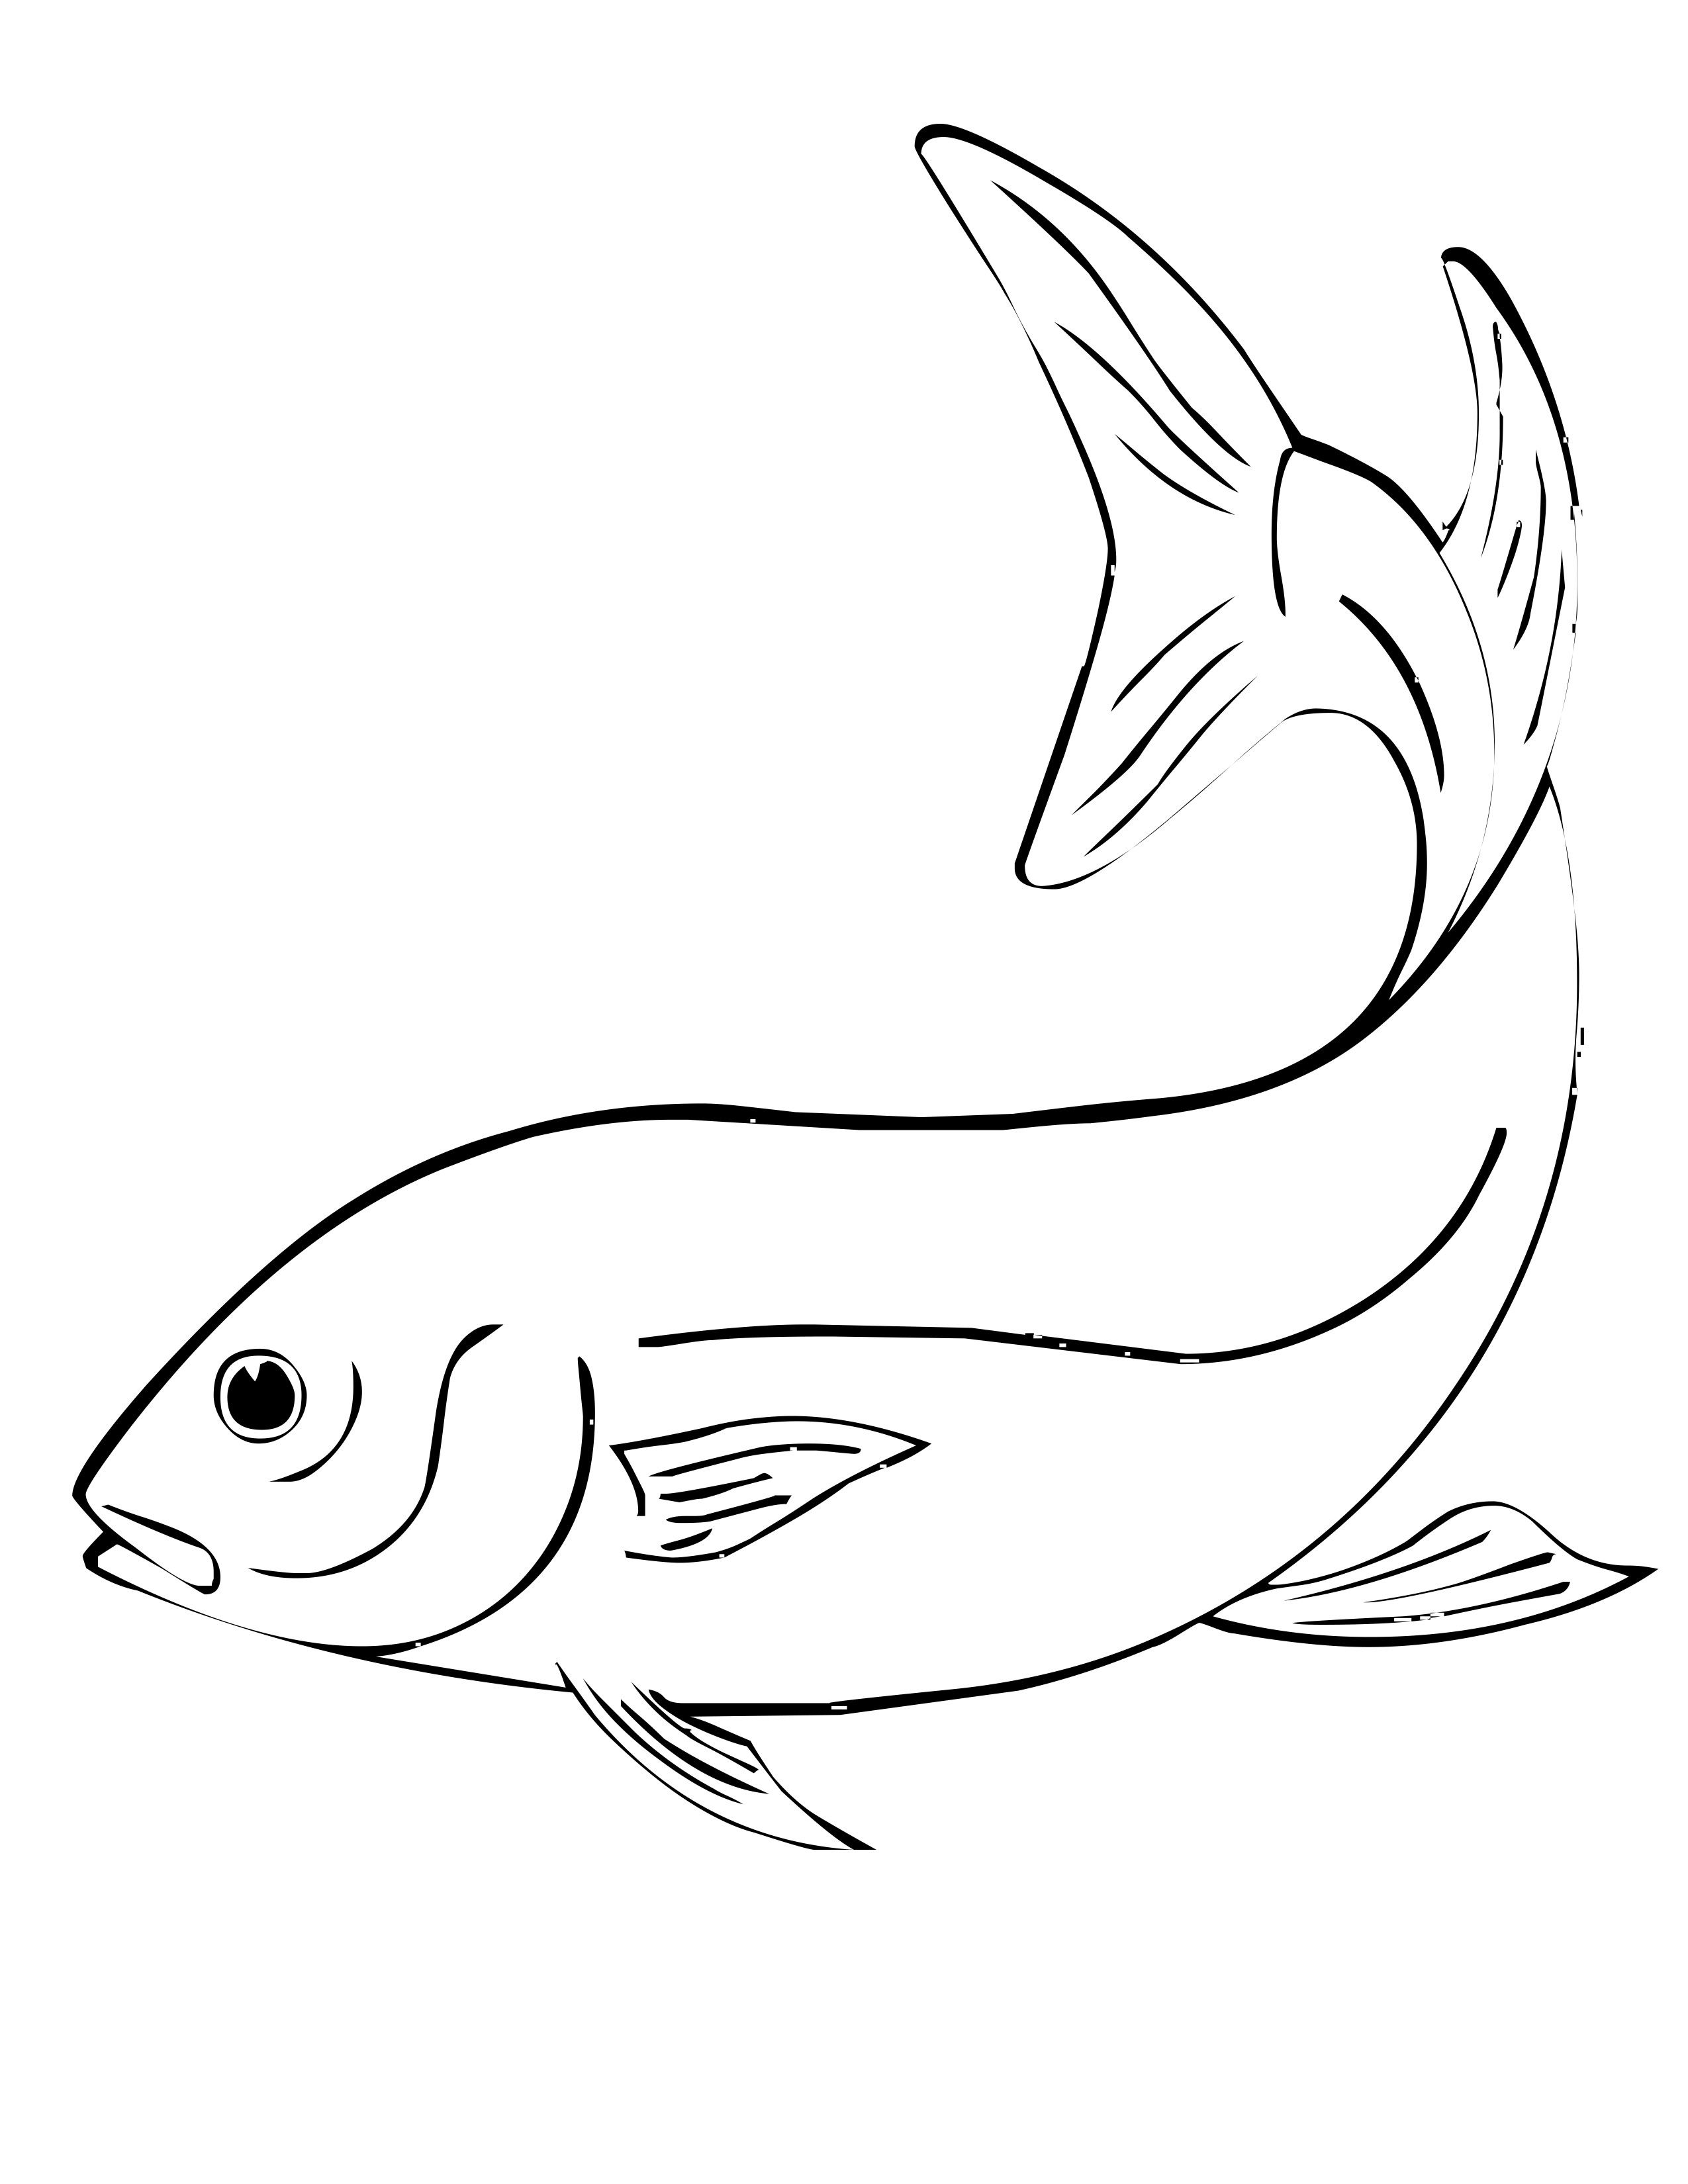 free coloring pages of fish - Fish Coloring Pages 2